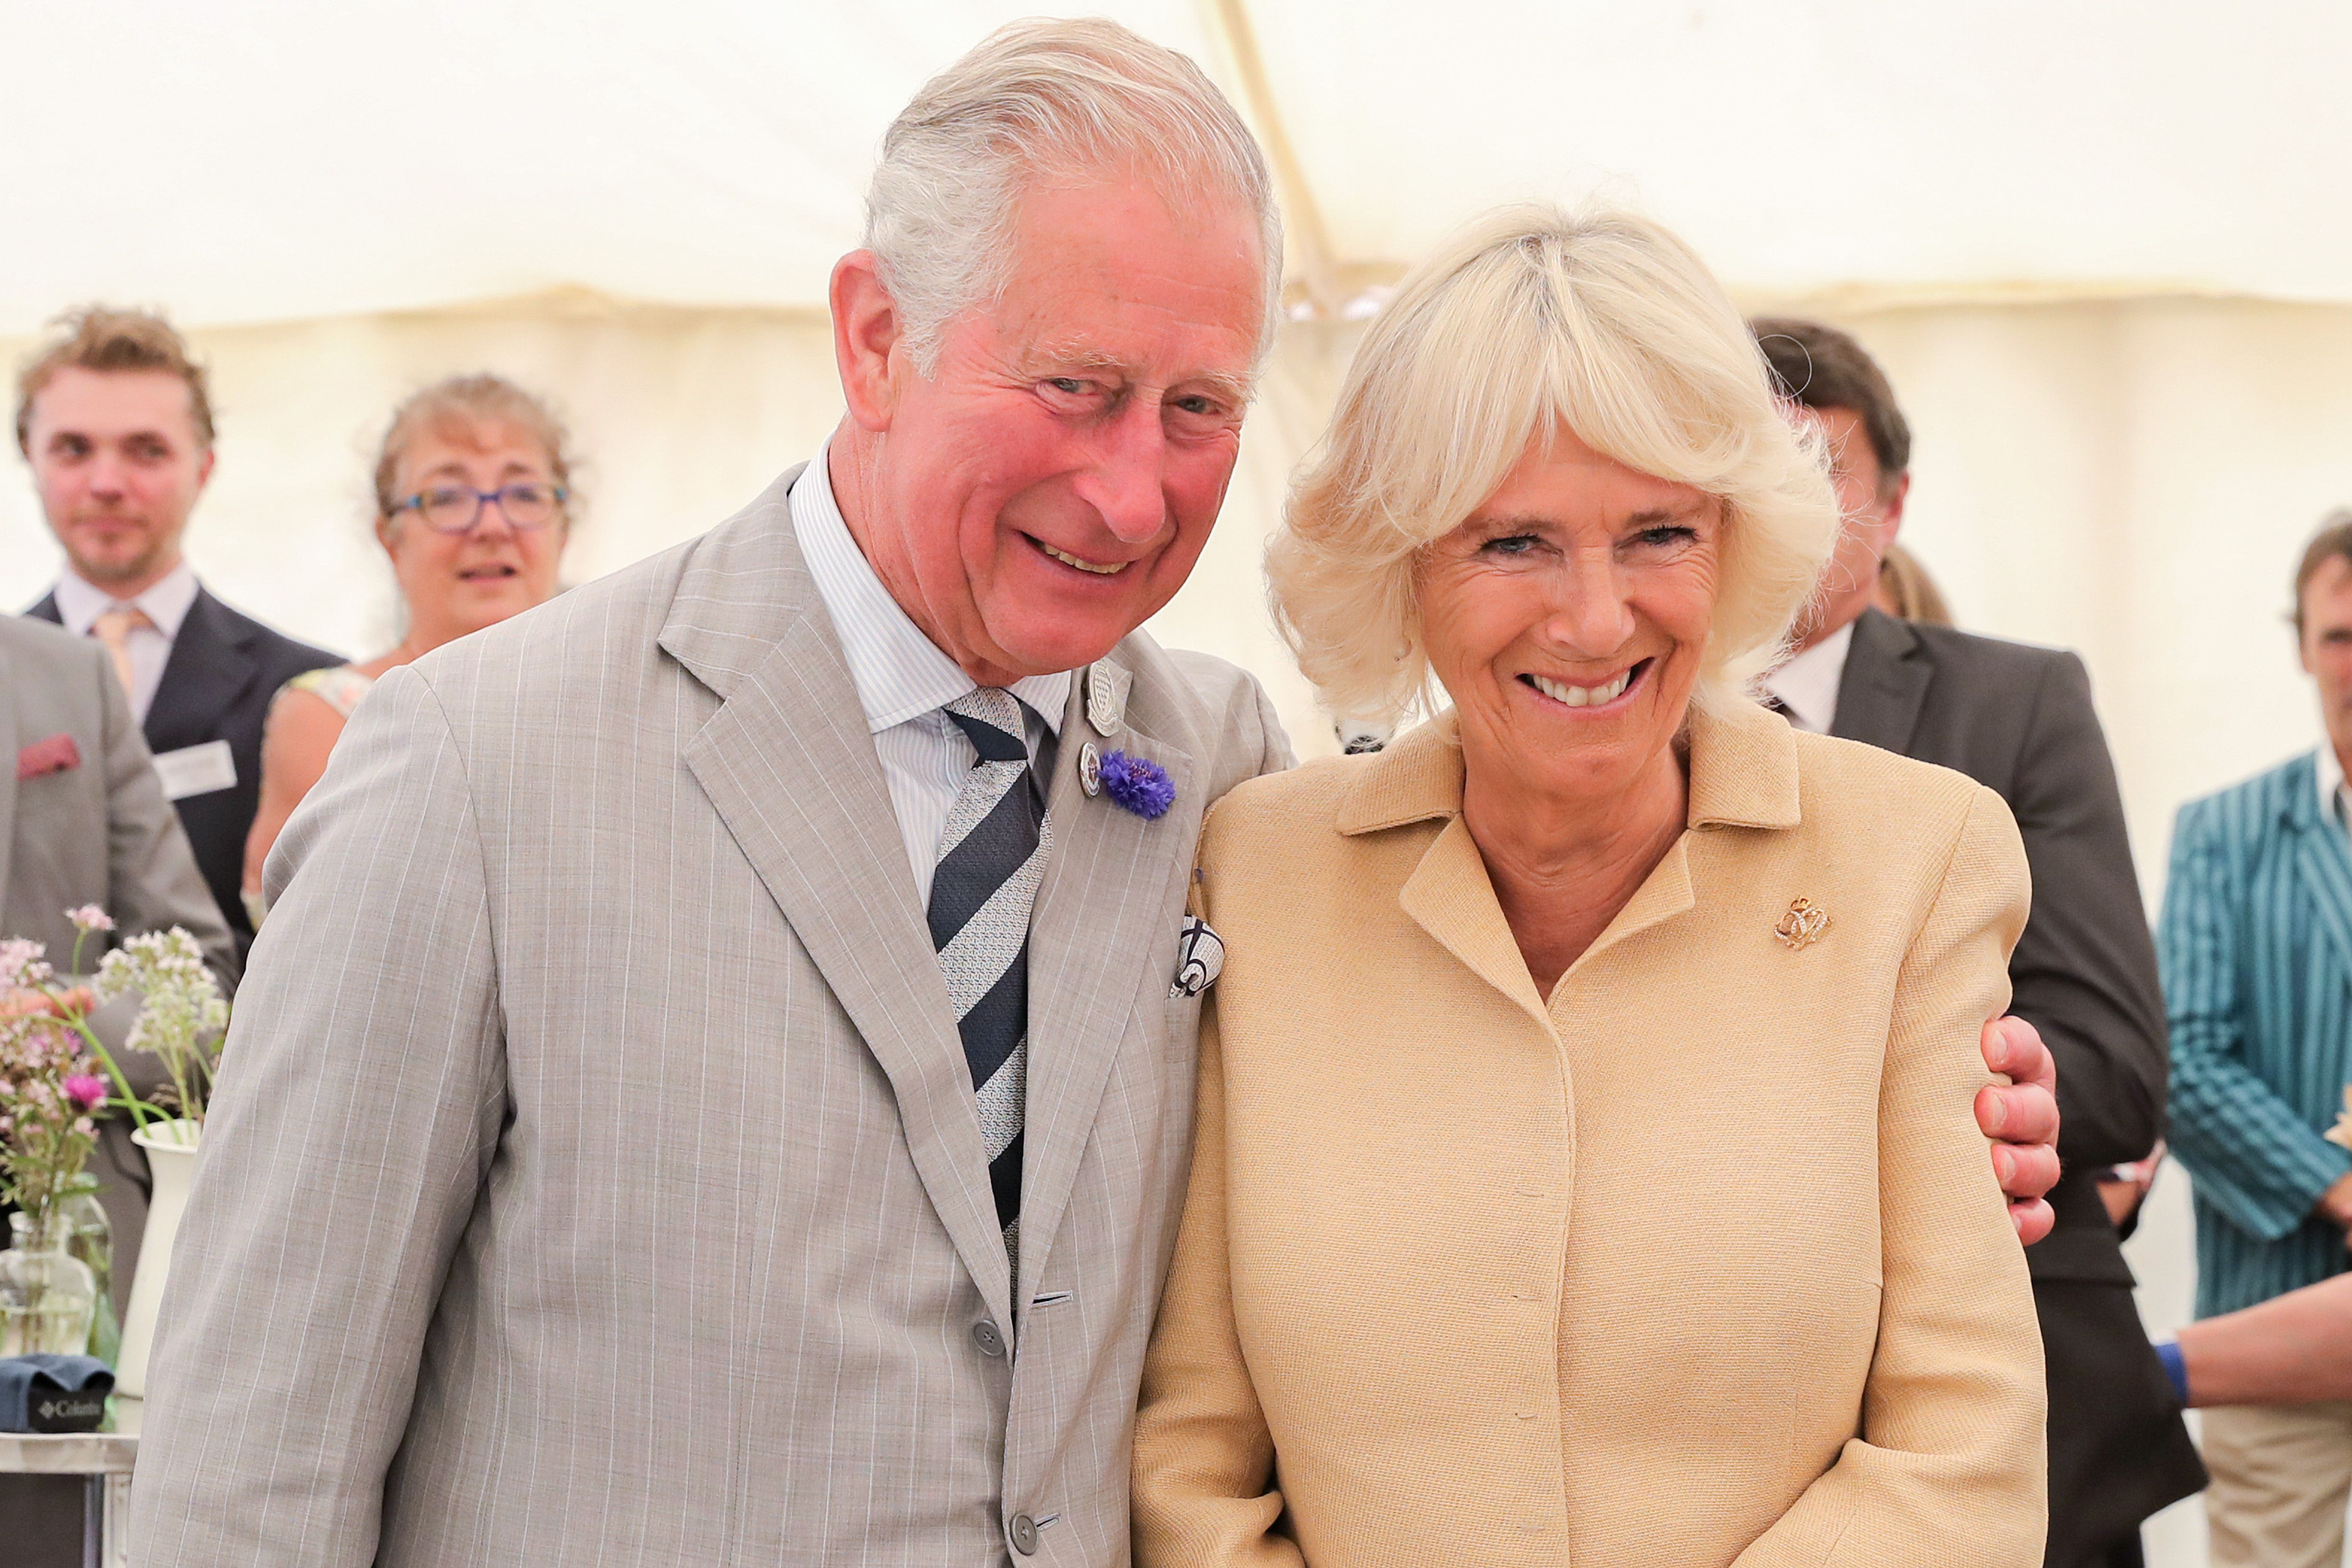 The Prince Of Wales & Duchess Of Cornwall Visit Devon & Cornwall on July 17, 2019 | Getty Images